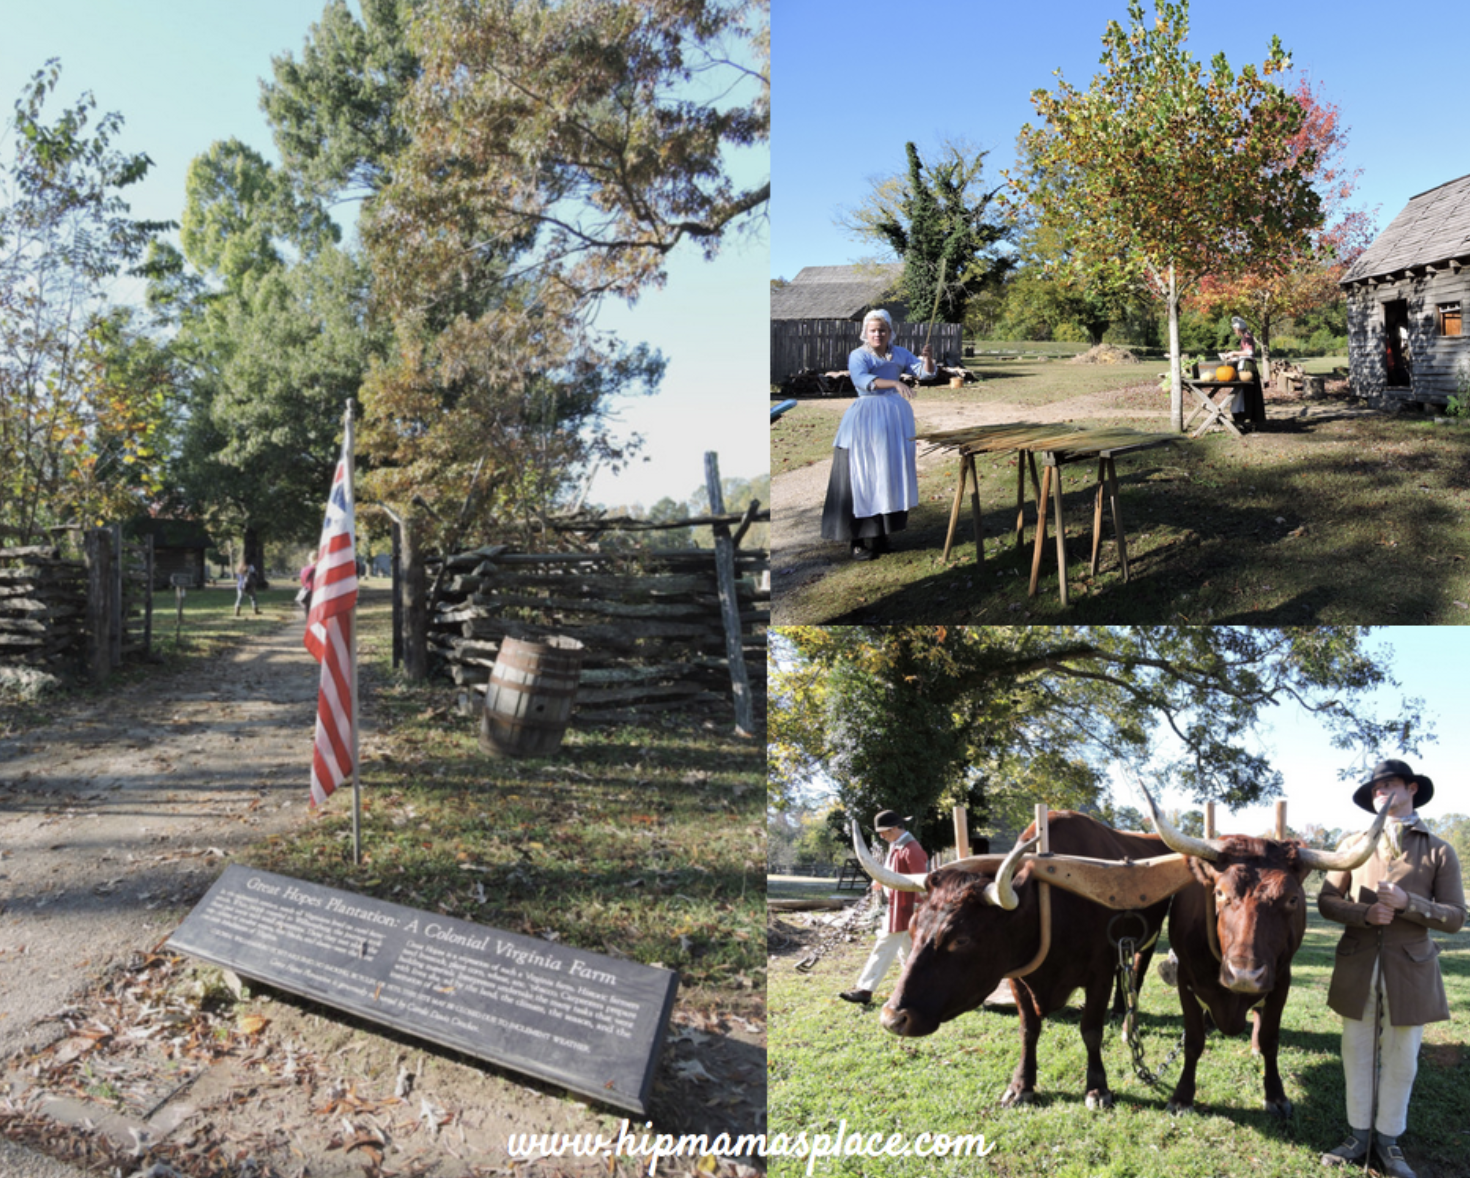 Chocolate History Tour in Williamsburg, Virginia